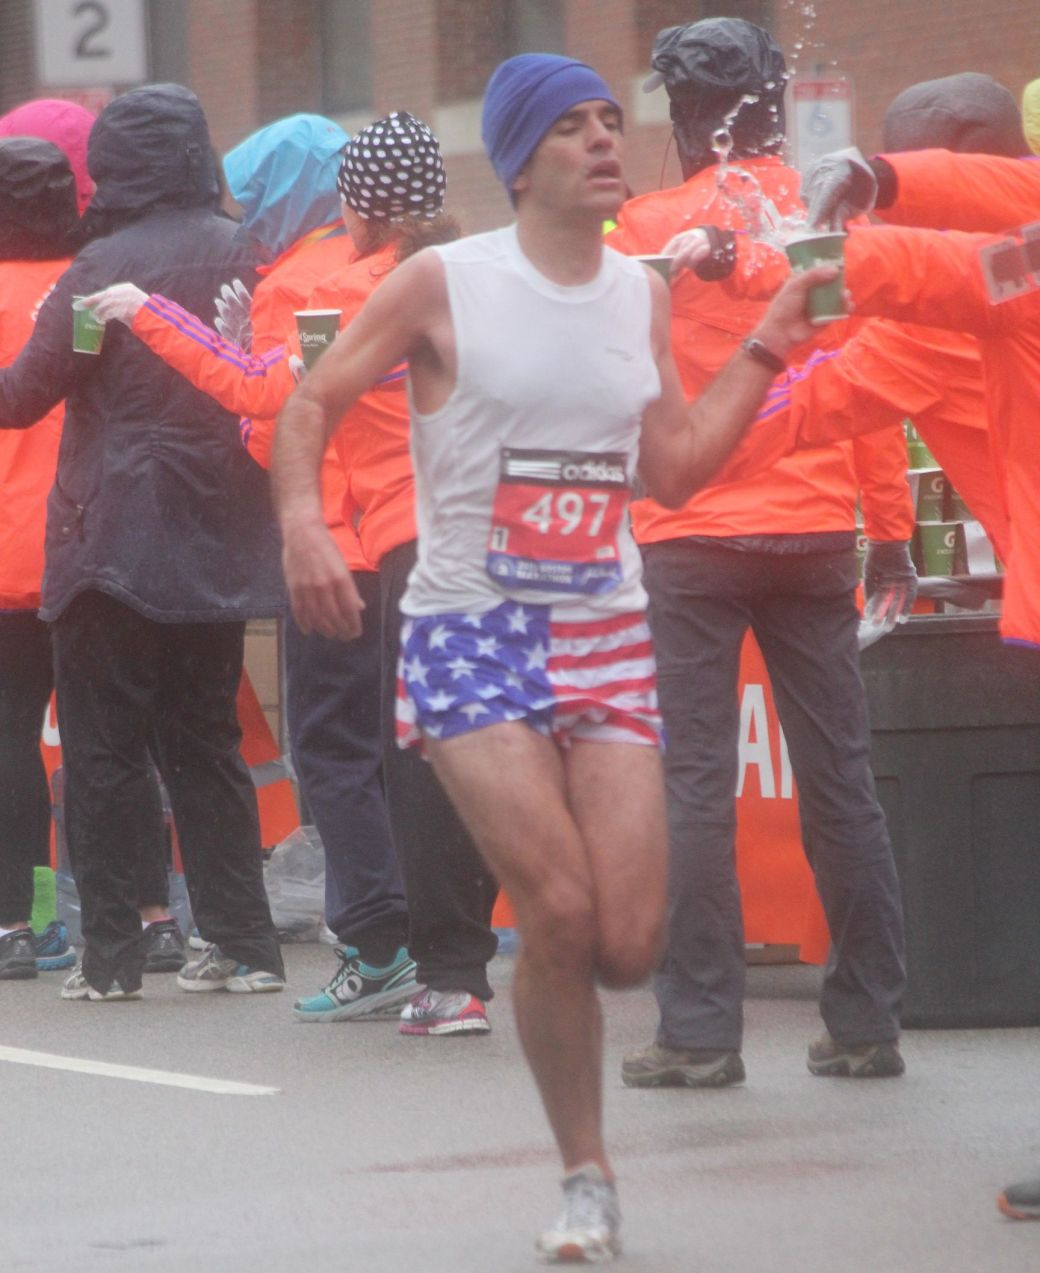 boston marathon april 20 2015 racer number 497